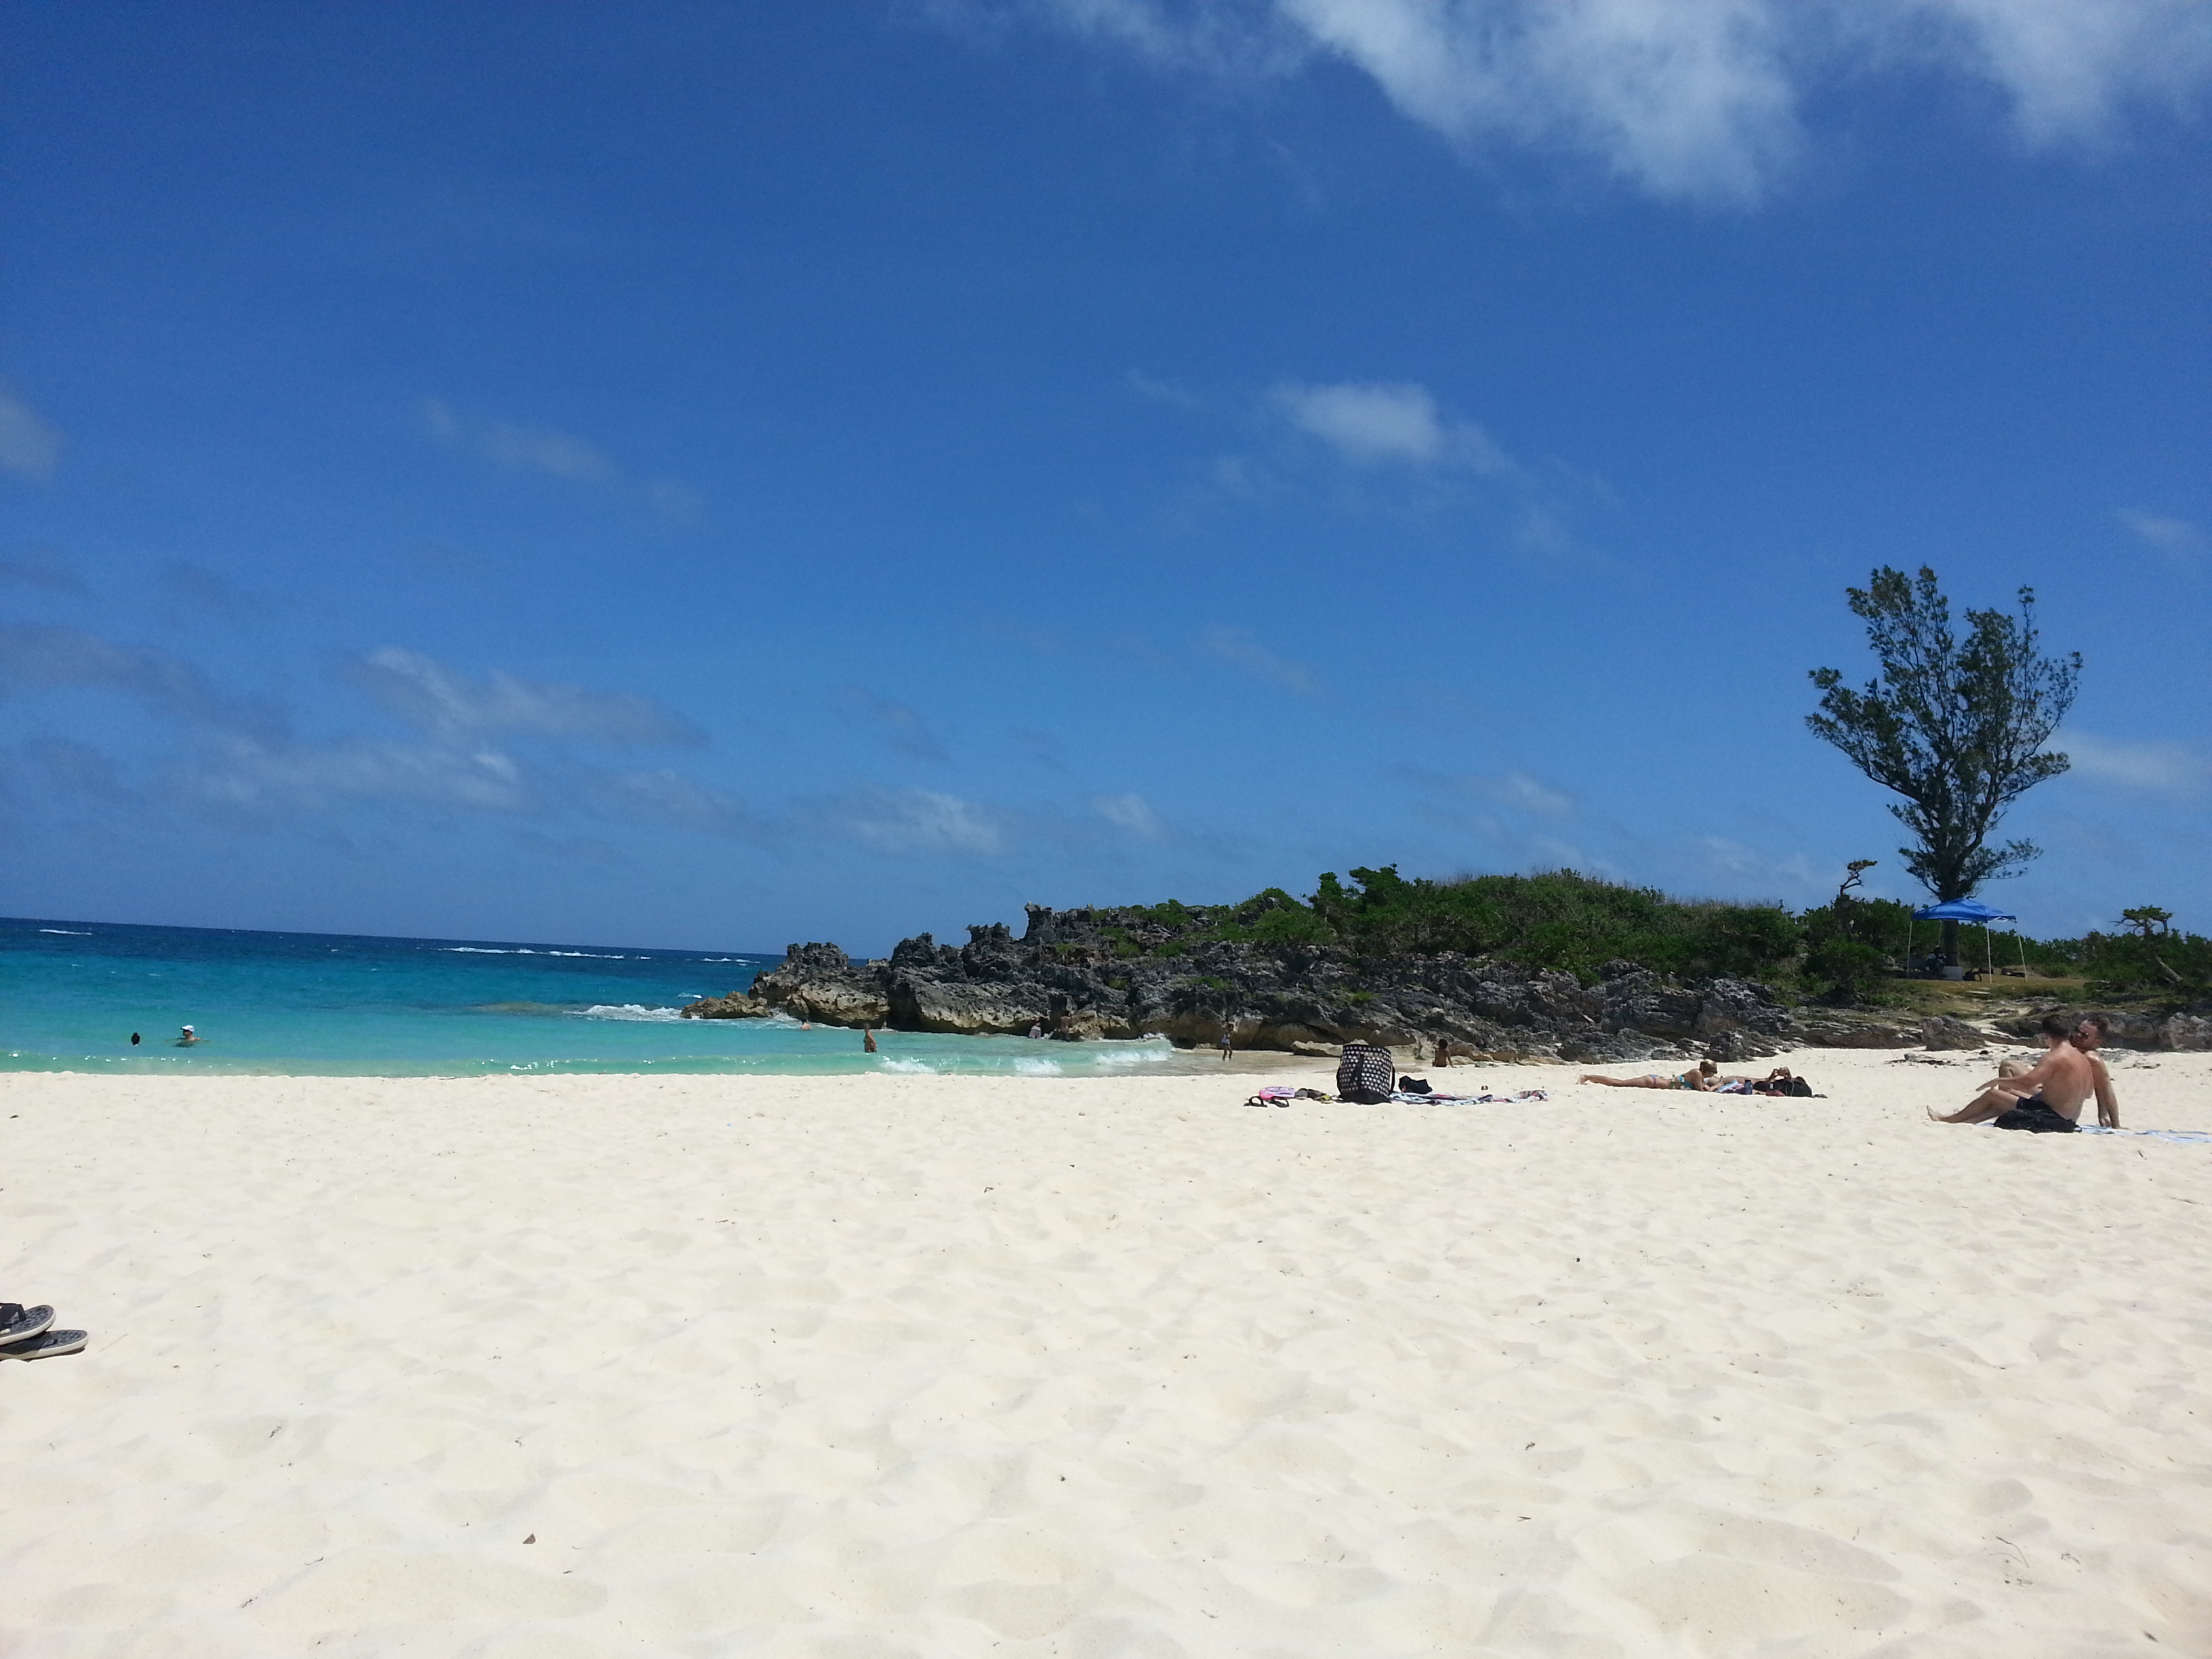 Bermuda Seeing Continued Tourism Boom